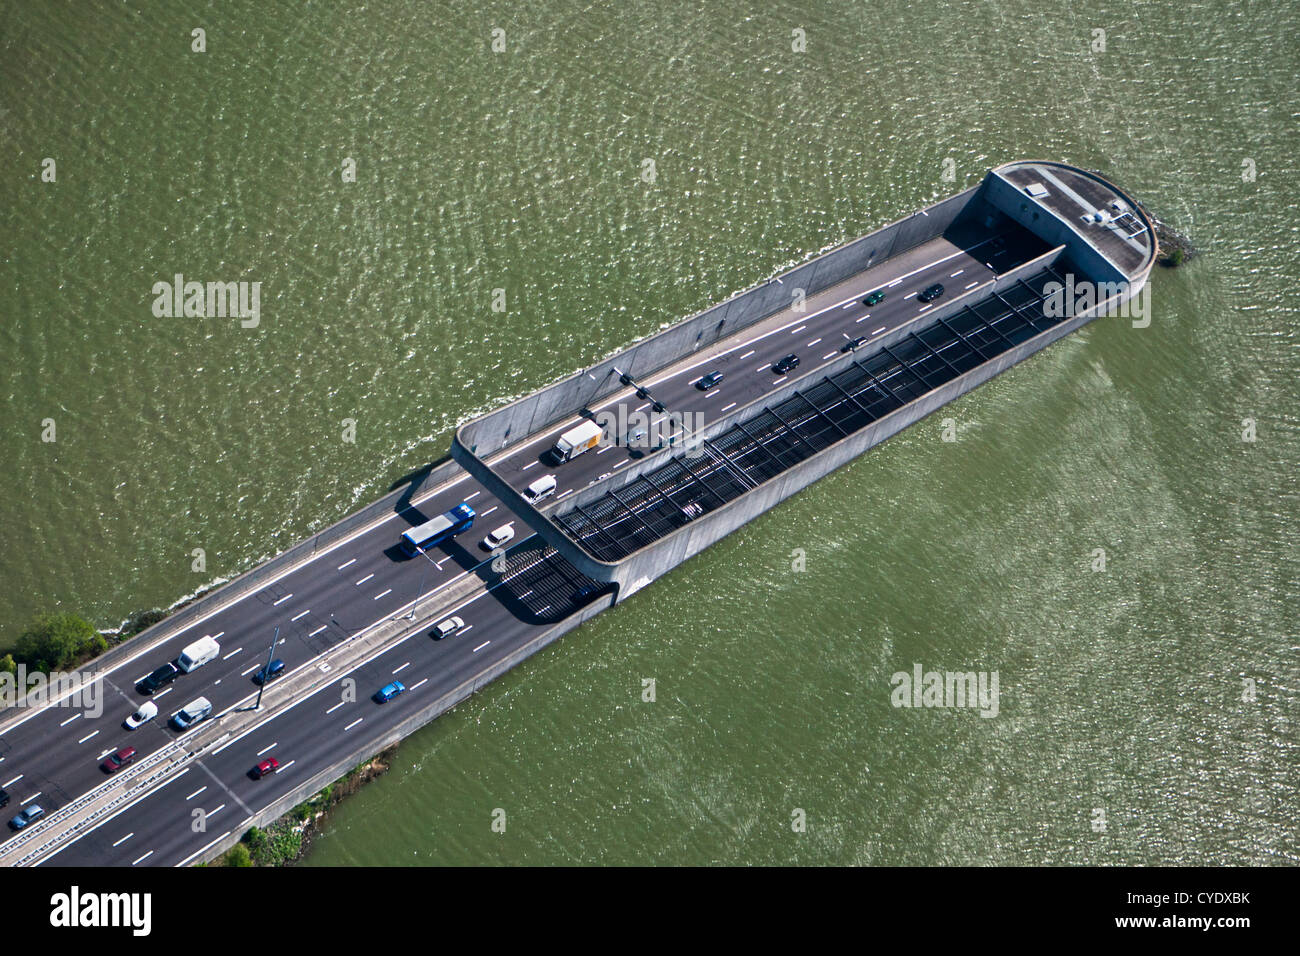 The Netherlands, Amsterdam, Access of Zeeburgertunnel, connecting the south and north of the city. Lake Het IJ. - Stock Image